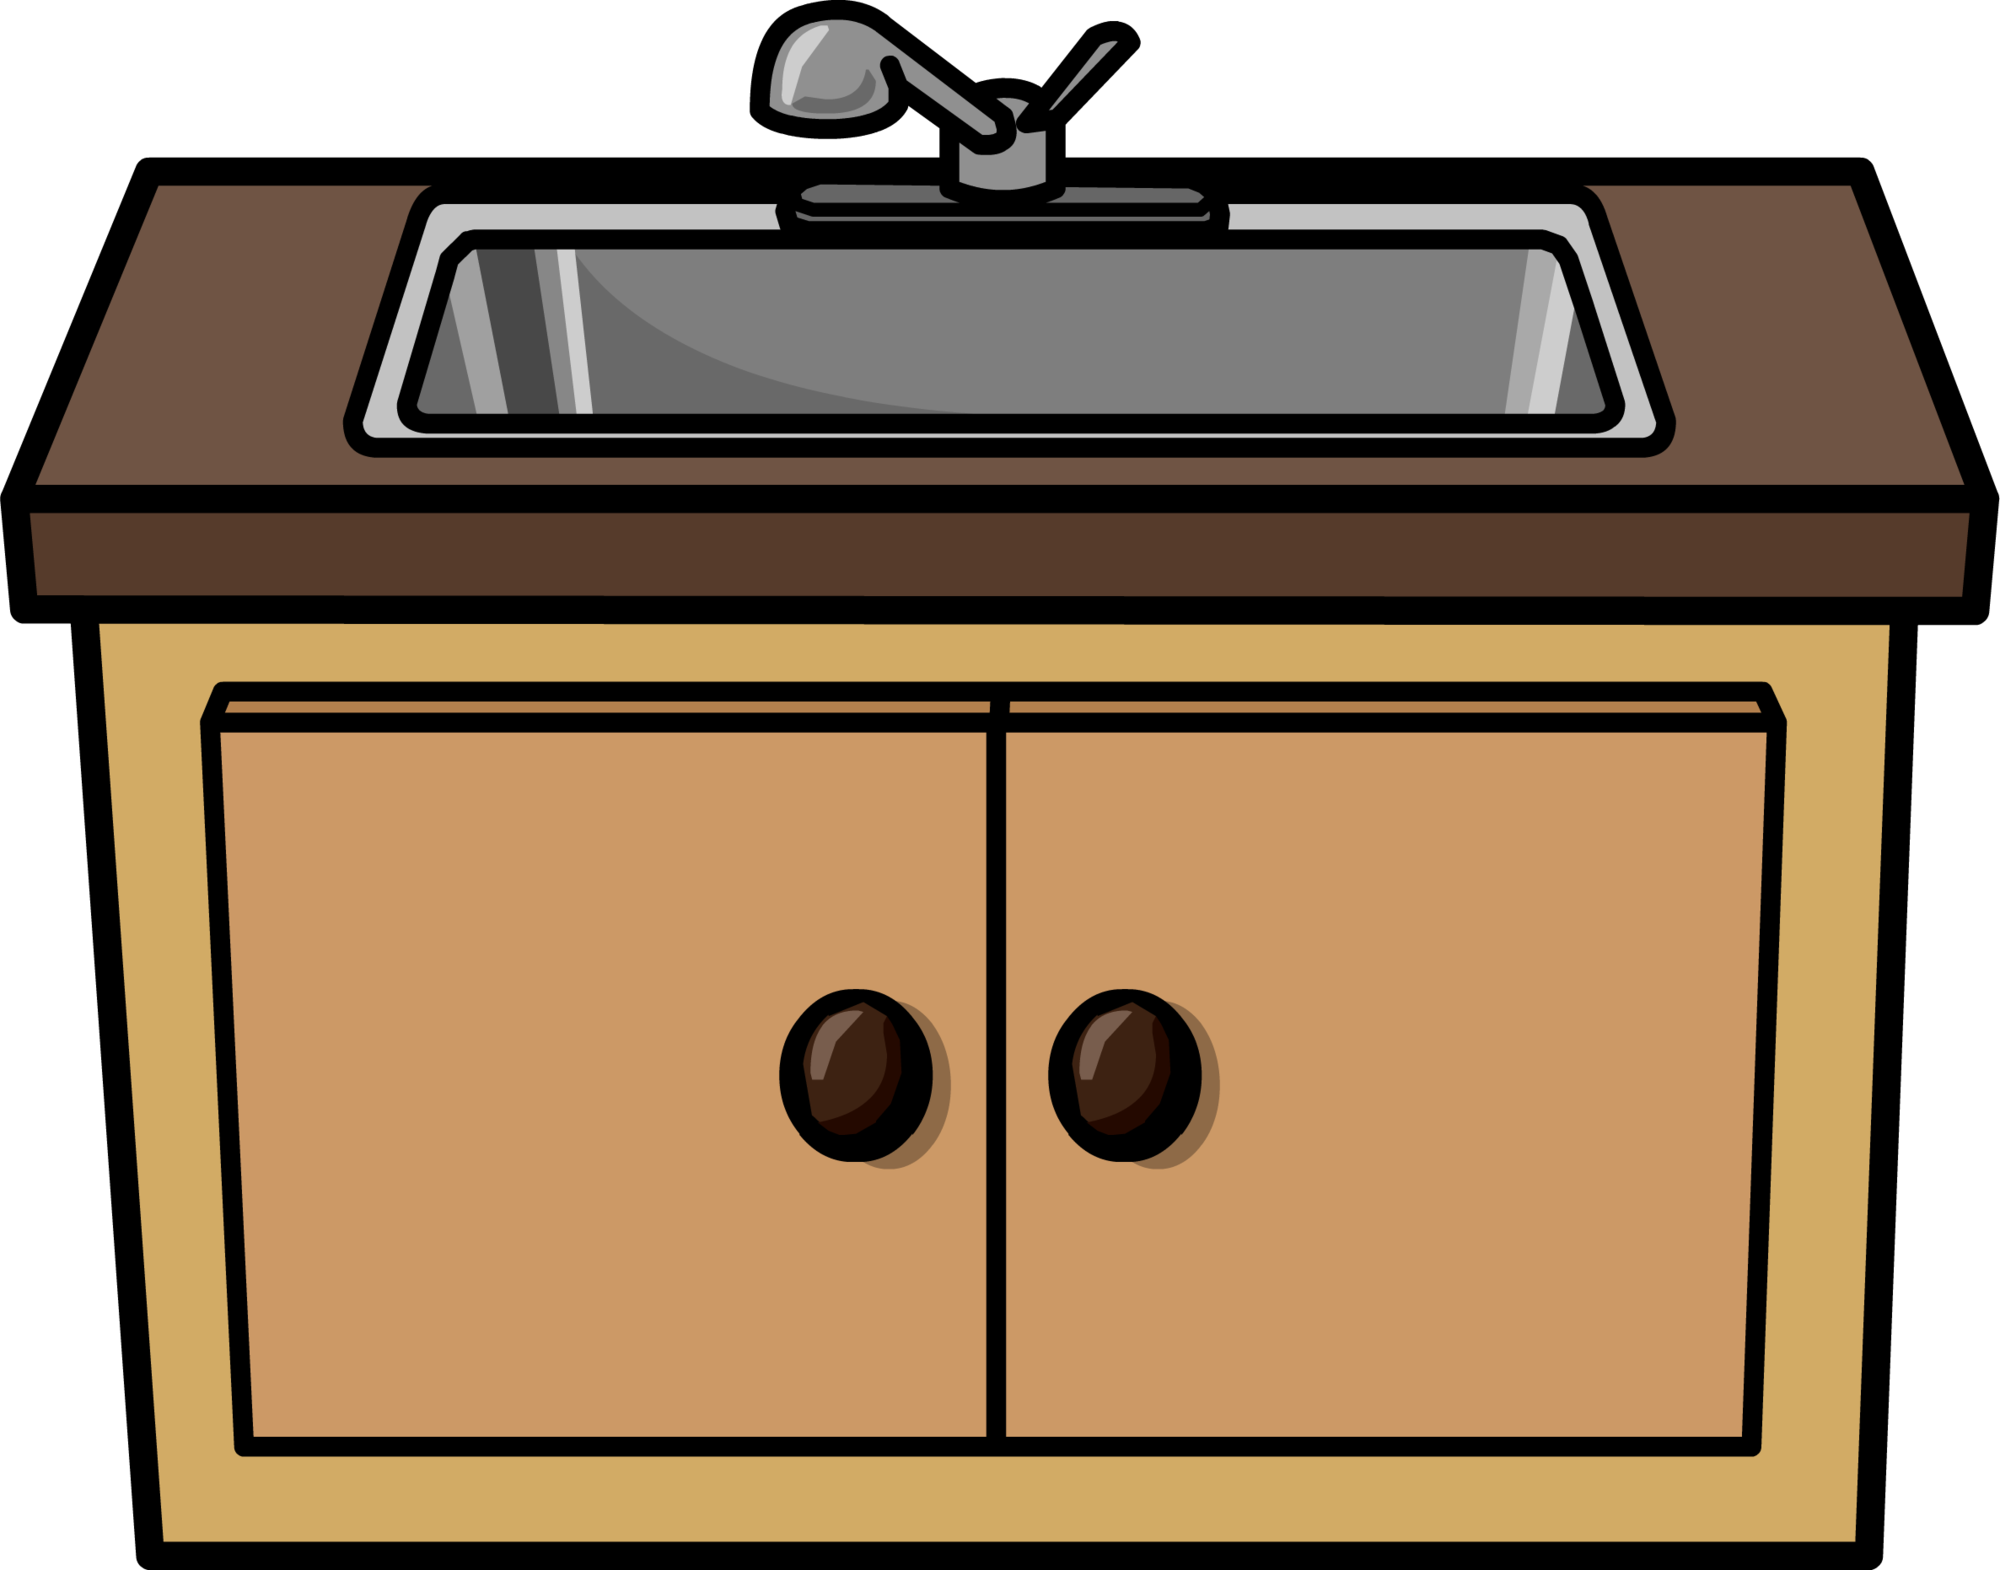 Marco rustico clipart jpg free library Stove clipart kitchen sink - 140 transparent clip arts ... jpg free library